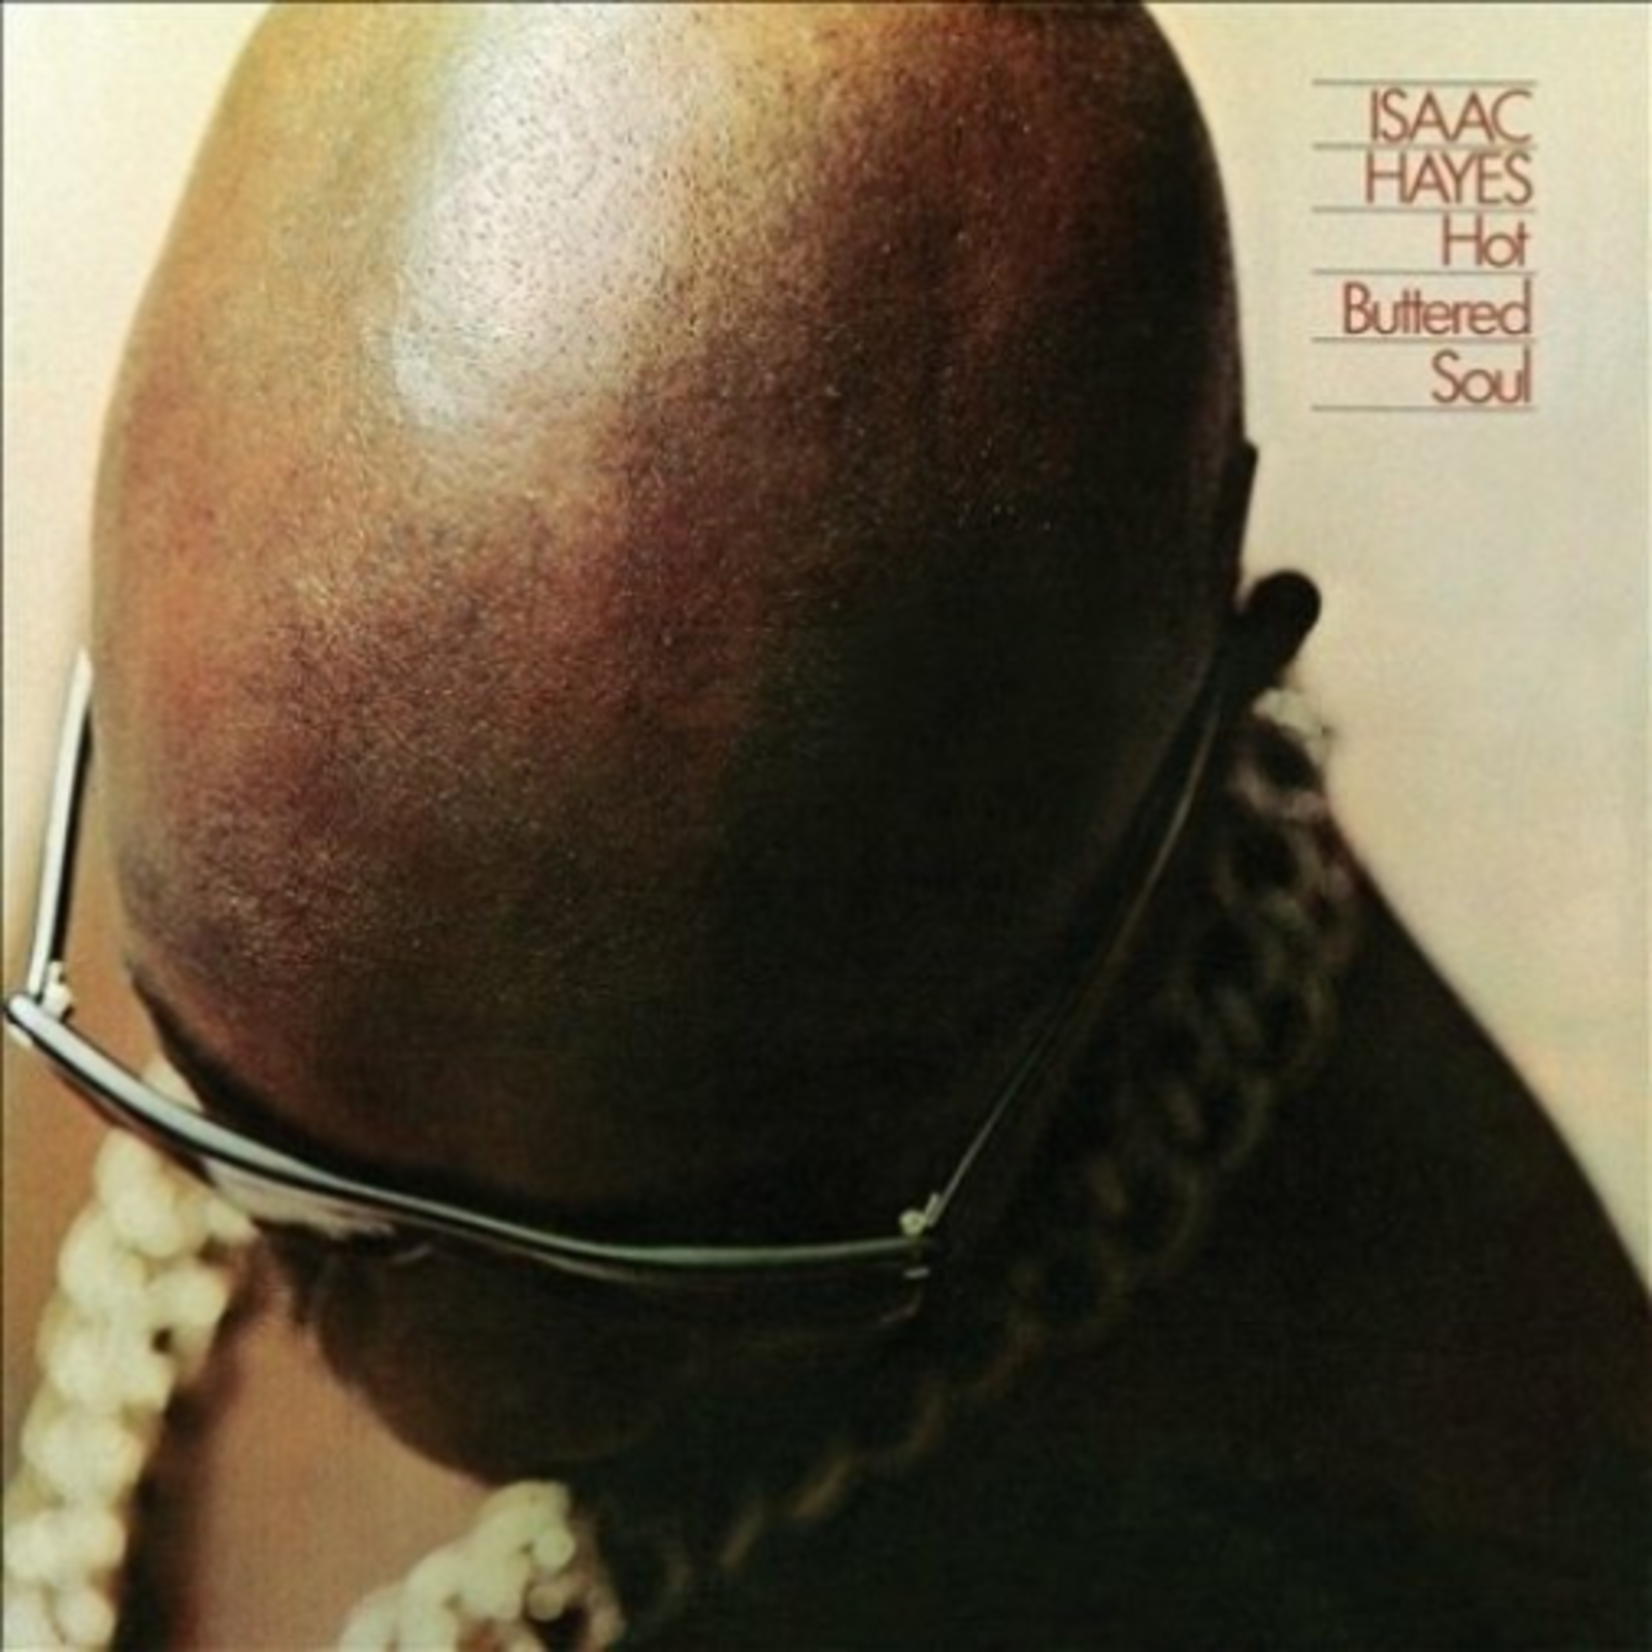 ISAAC HAYES HOT BUTTERED SOUL (LP)